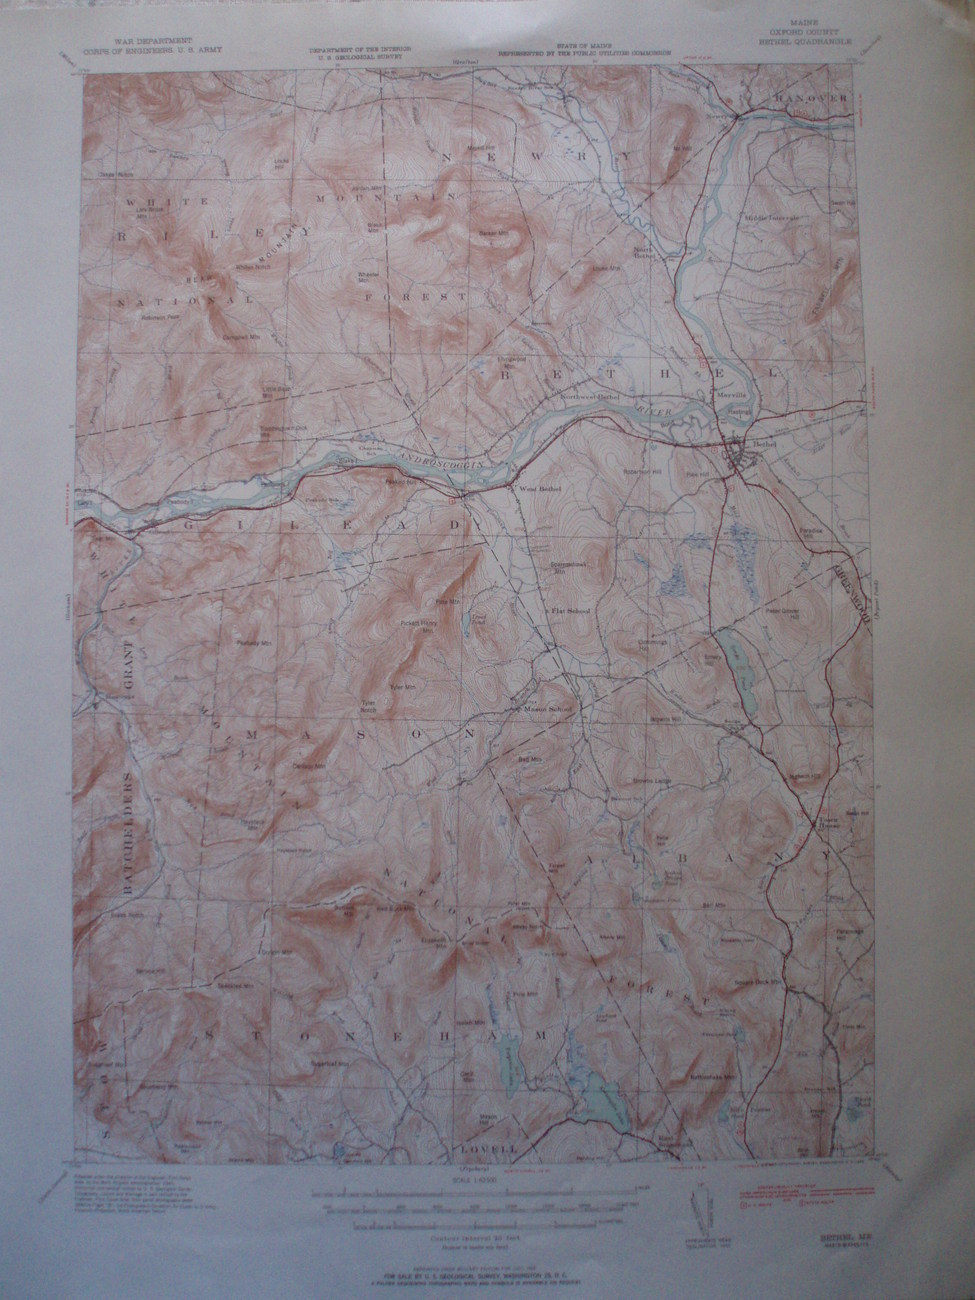 Bethel ME US Geological topography survey map 1935